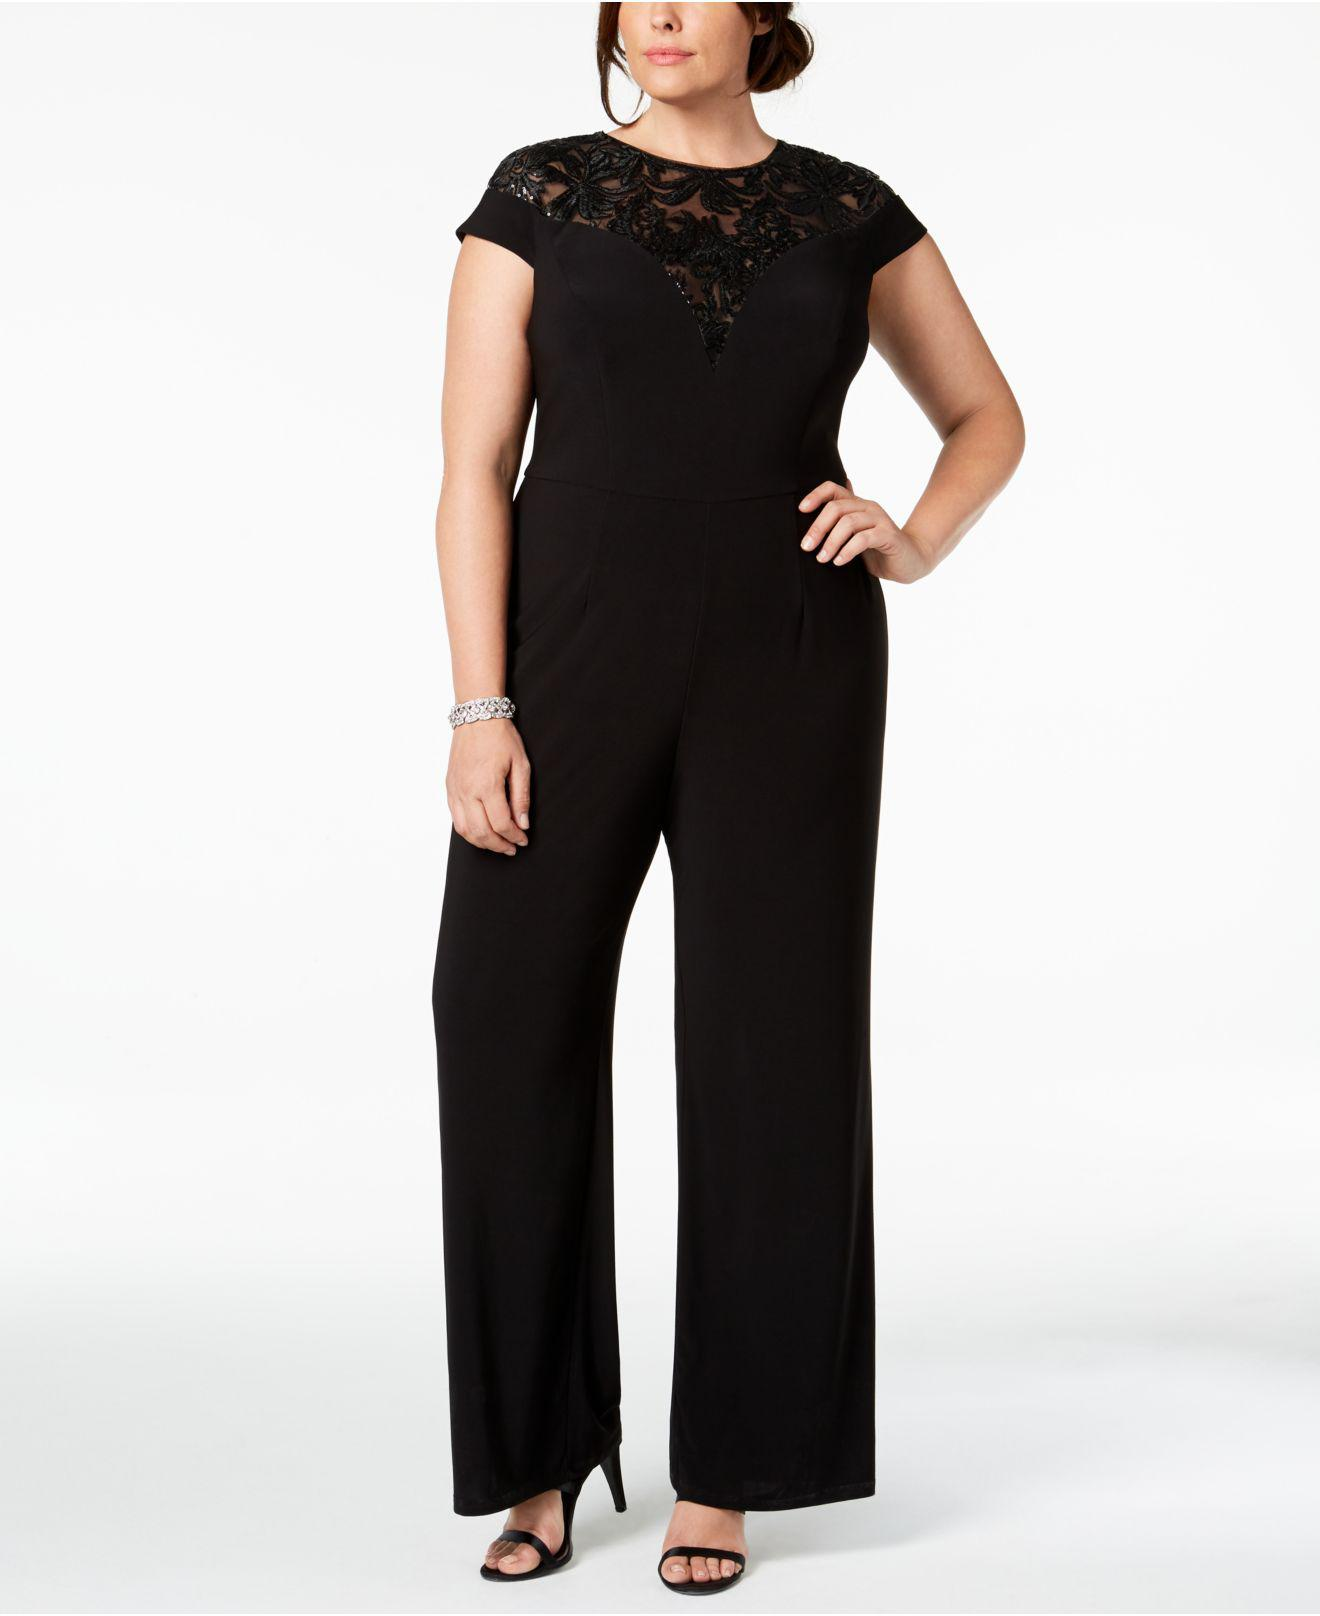 d55462ecfbfa3 Lyst - Adrianna Papell Plus Size Sequined Jersey Jumpsuit in Black ...